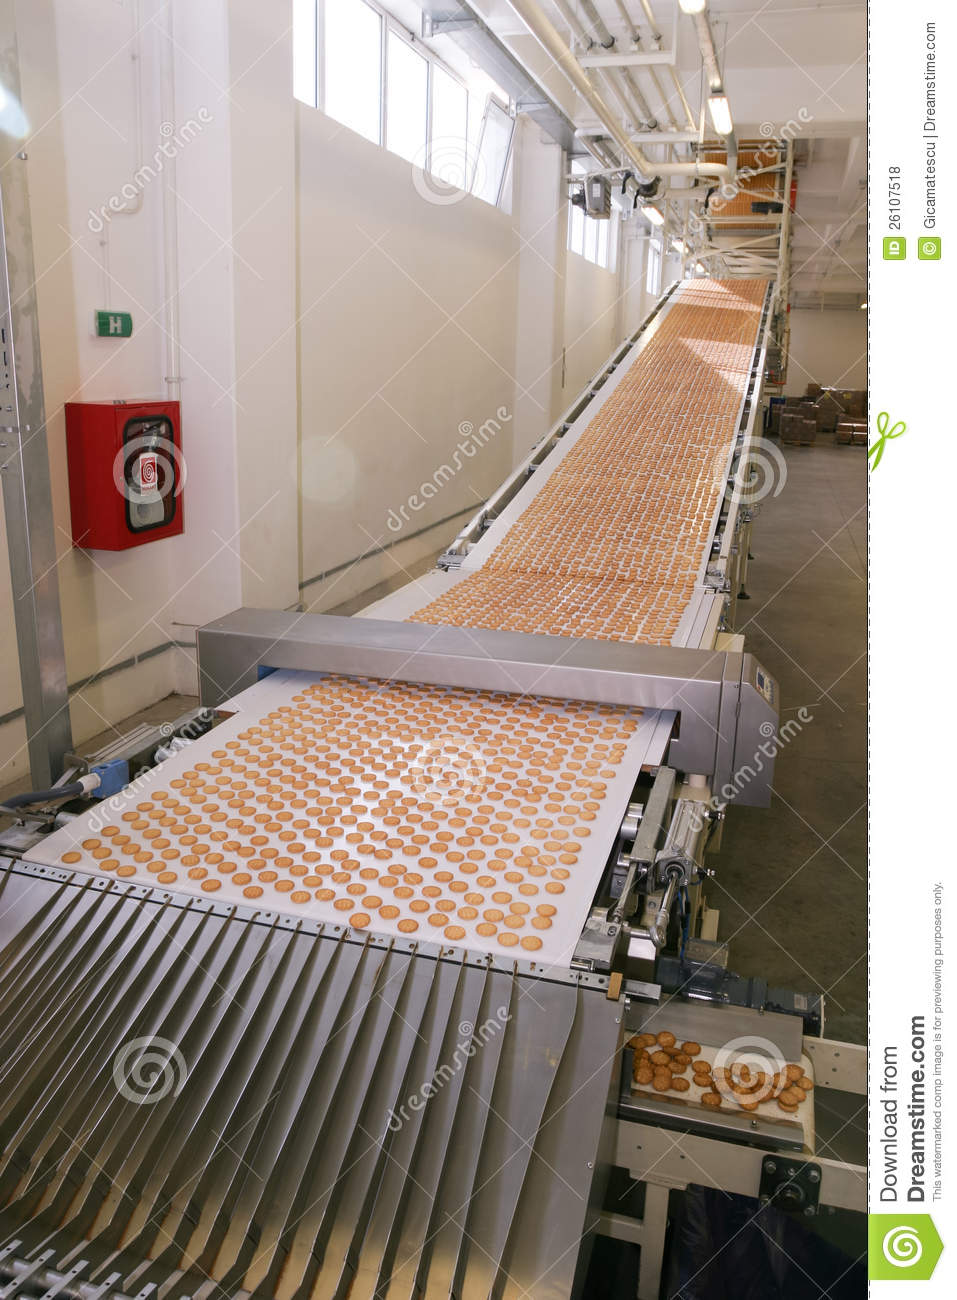 Biscuit Factory Stock Photo Image Of Action Delicious